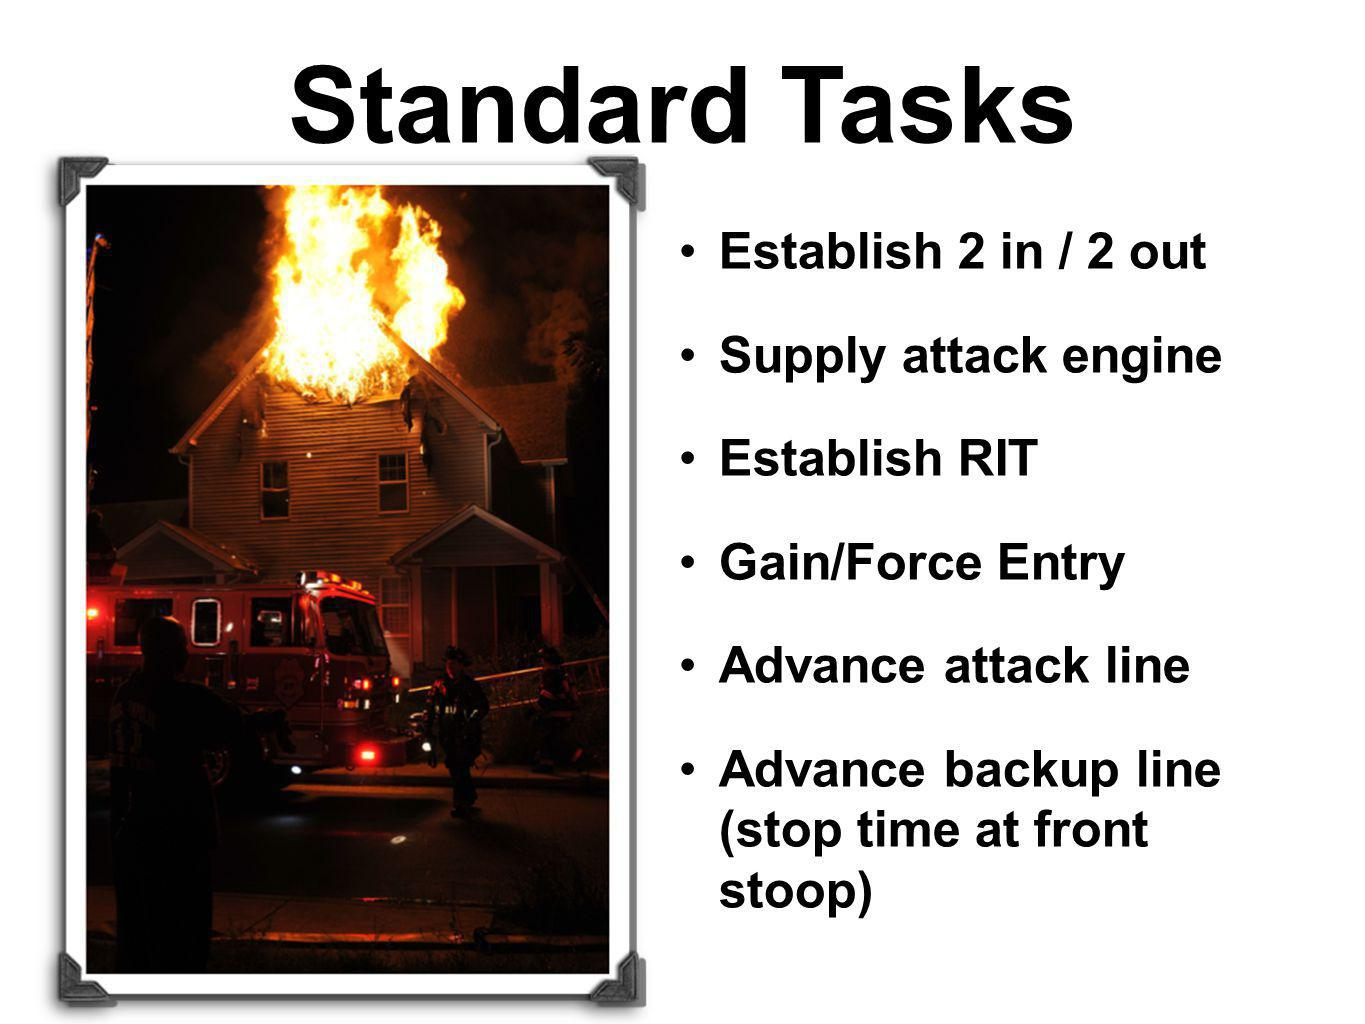 Establish 2 in / 2 out Supply attack engine Establish RIT Gain/Force Entry Advance attack line Advance backup line (stop time at front stoop) Standard